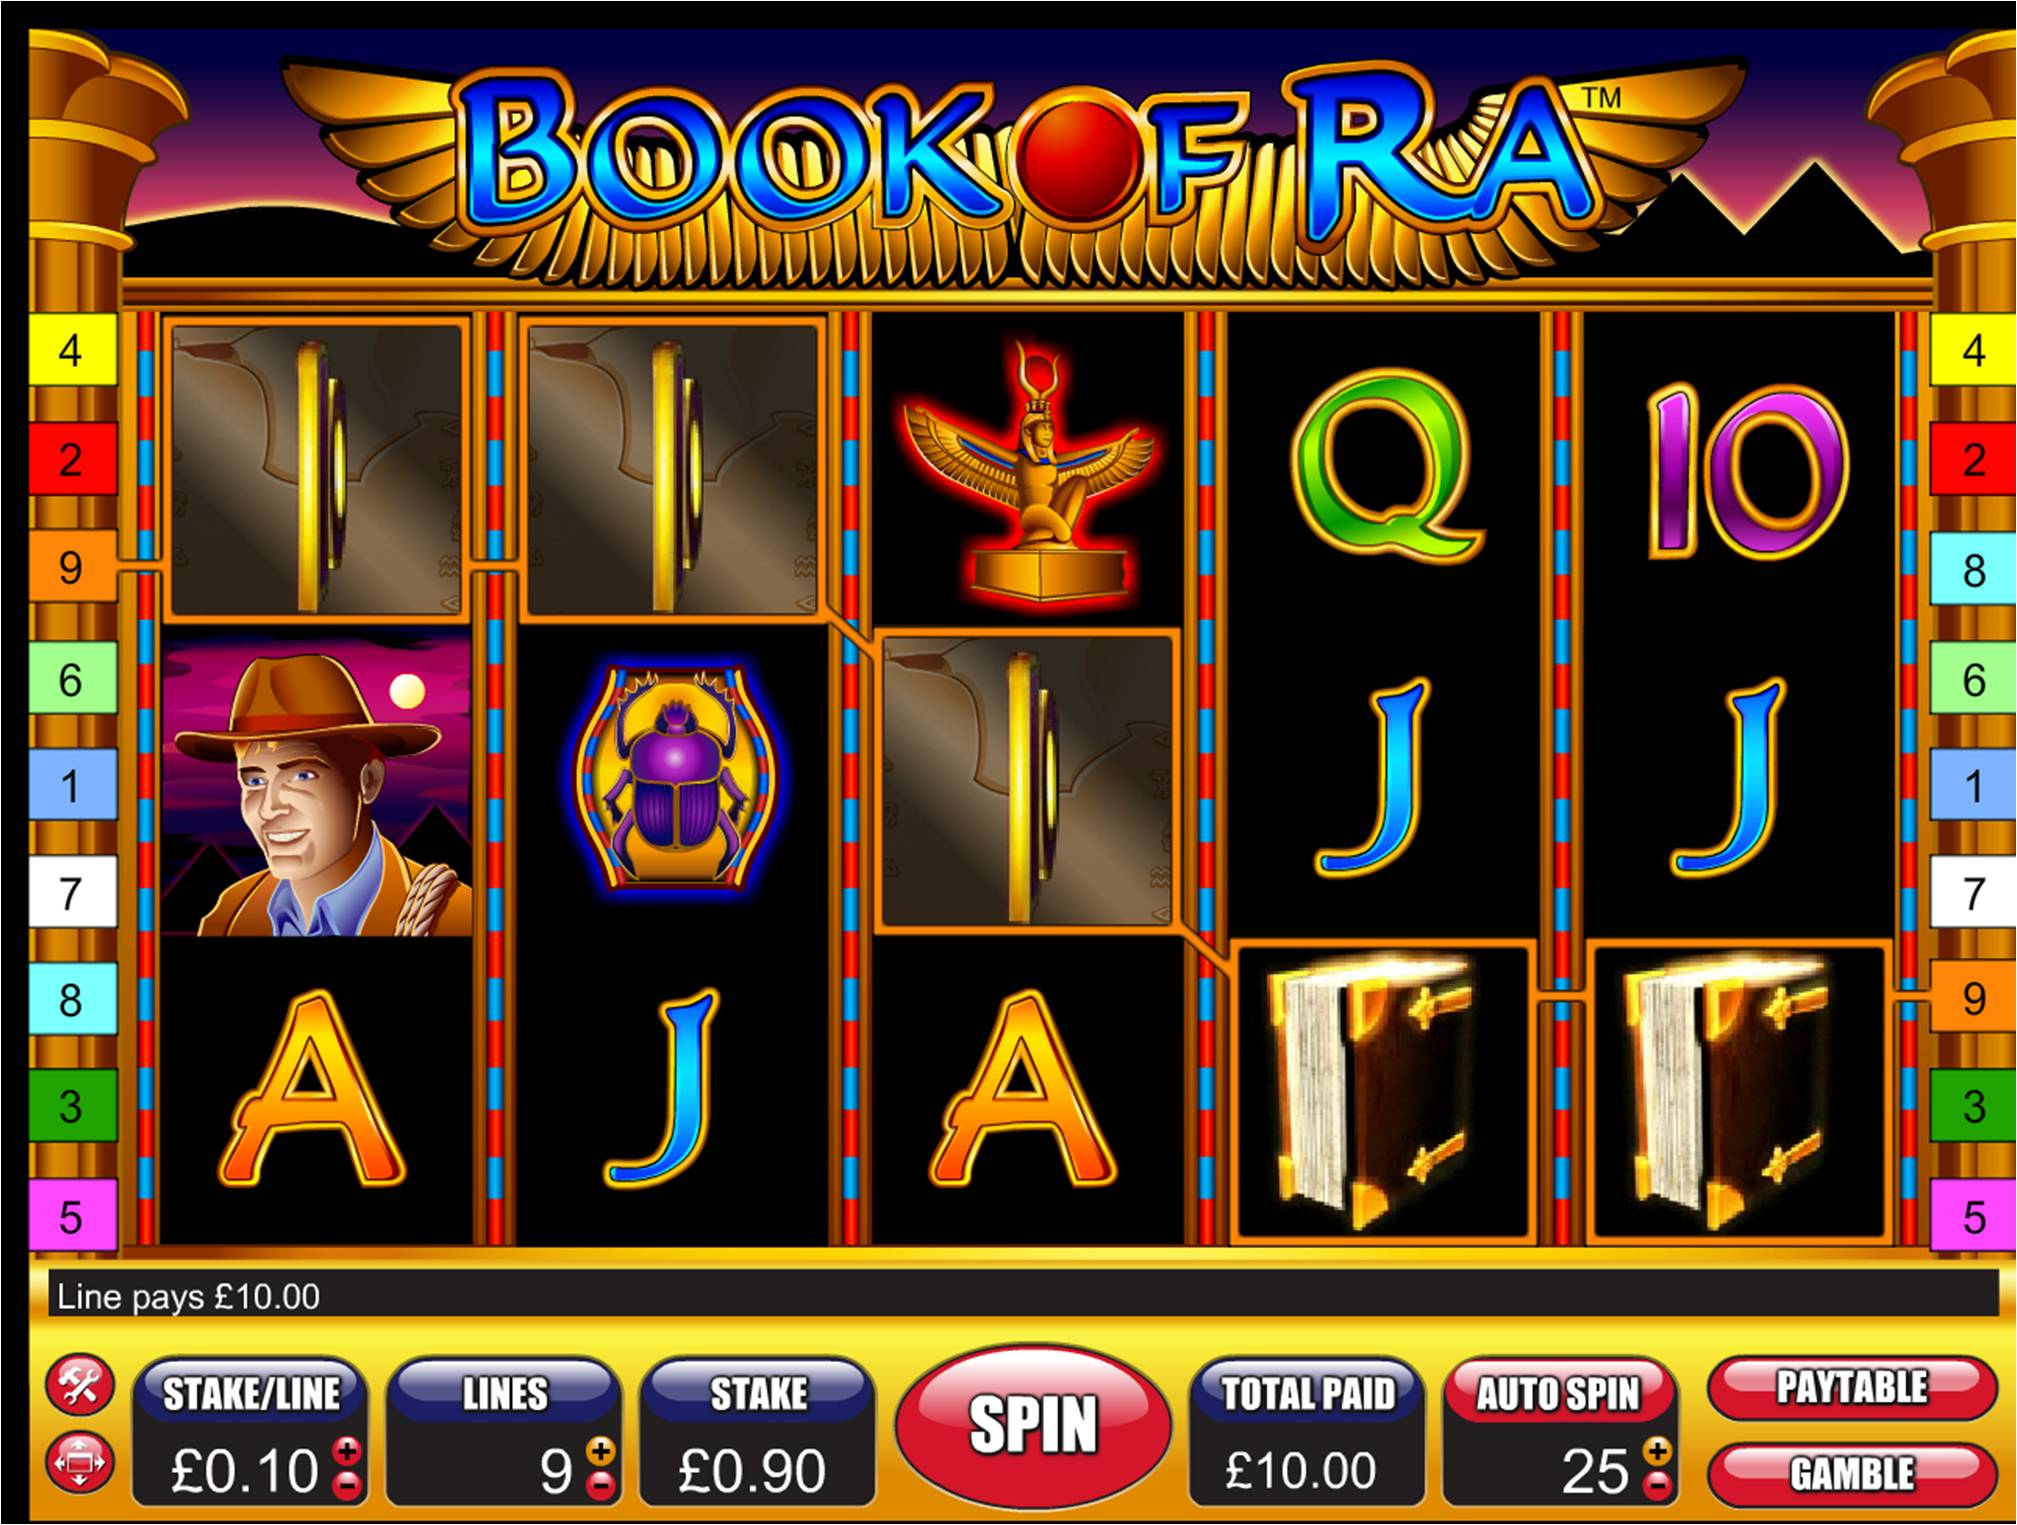 Spielautomaten Tricks Book Of Ra